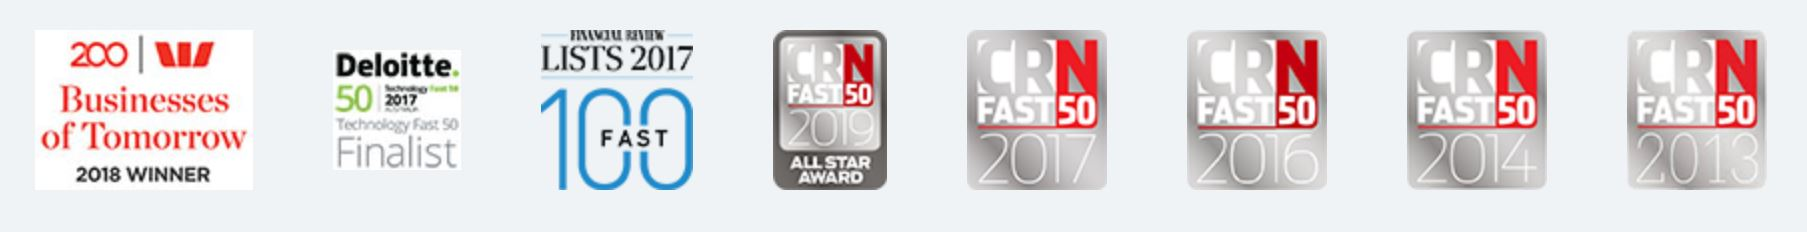 Touchoint's Awards including AFR Fast 100, CRN Fast 50, Westpac Businesses of Tomorrow and Deloitte Technology Fast 50